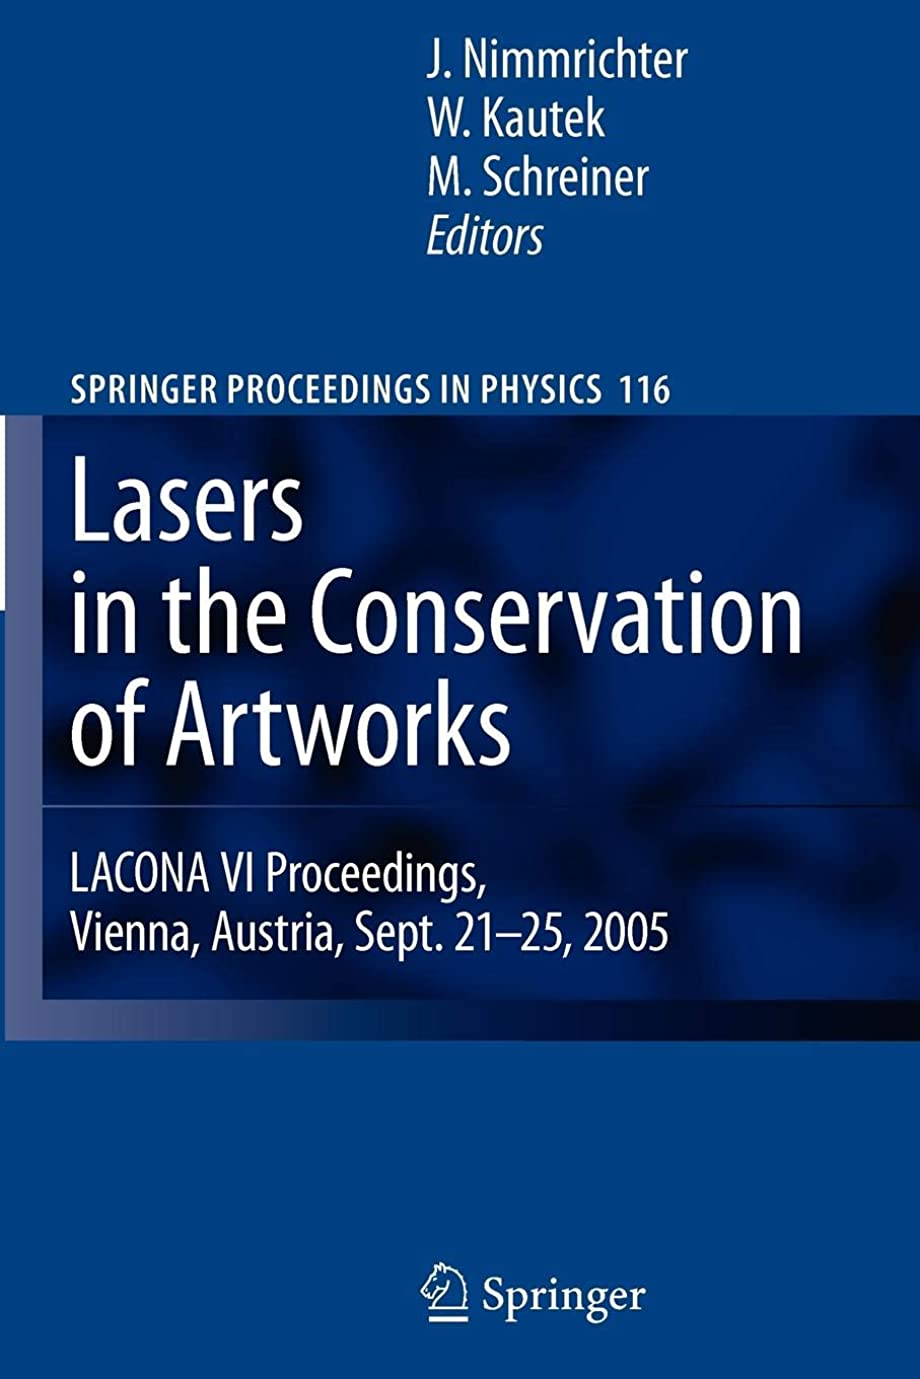 広告抗生物質土砂降りLasers in the Conservation of Artworks: LACONA VI Proceedings, Vienna, Austria, Sept. 21--25, 2005 (Springer Proceedings in Physics)